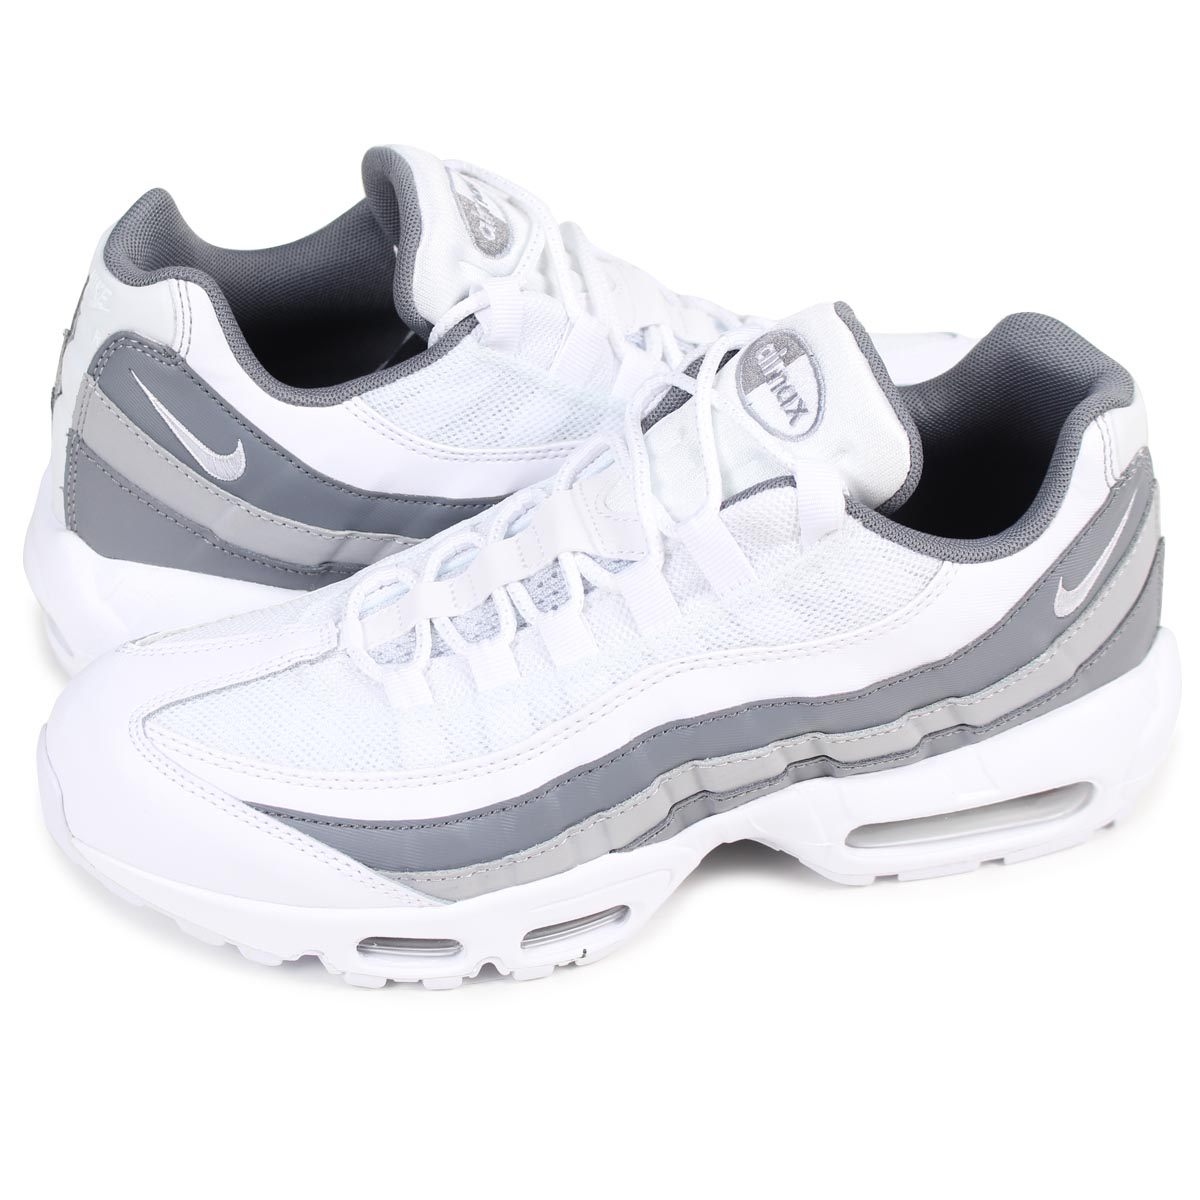 the latest d527e 6e7b6 NIKE AIR MAX 95 ESSENTIAL Kie Ney AMAX 95 essential sneakers men 749,766-105  white ...